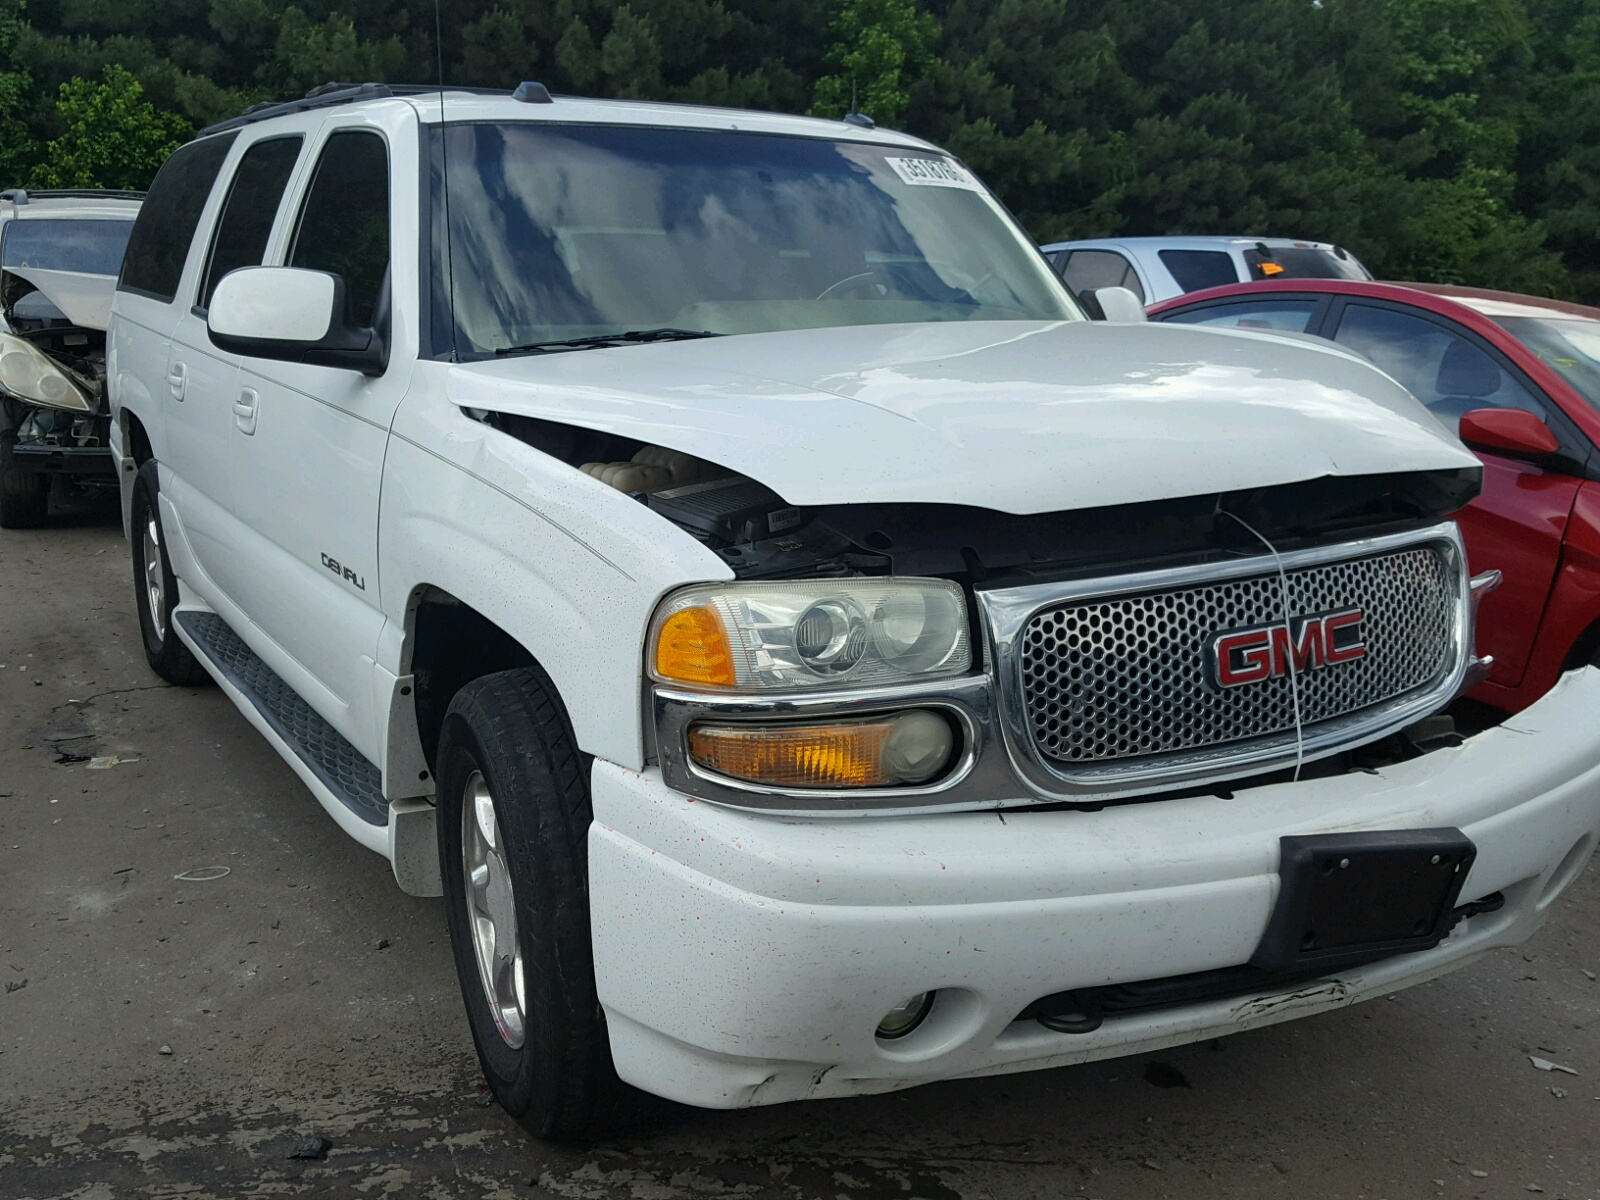 Salvage 2004 GMC YUKON XL D for sale